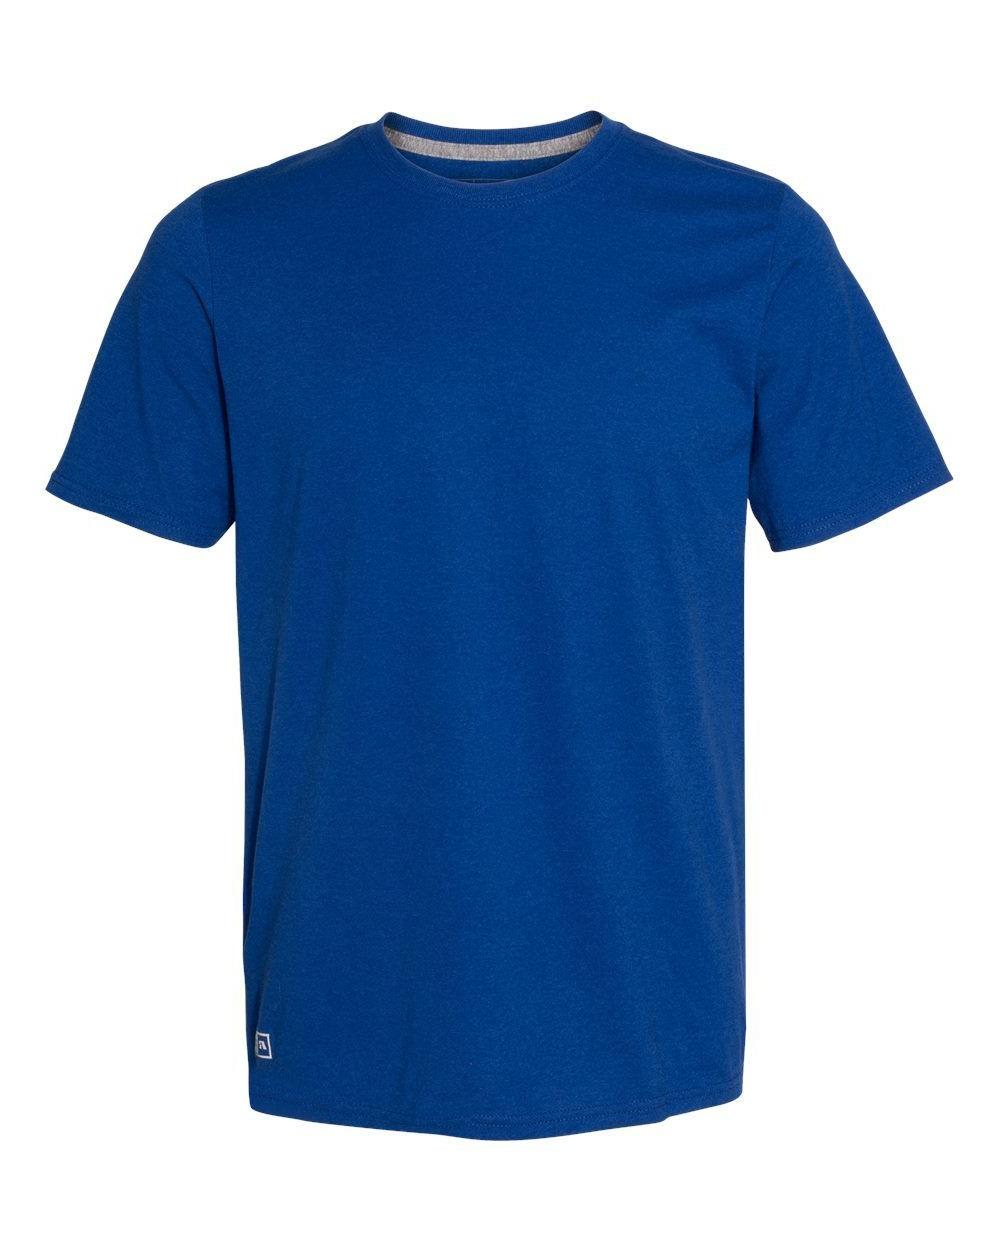 Russell Youth Essential Blend Sports T-Shirt,